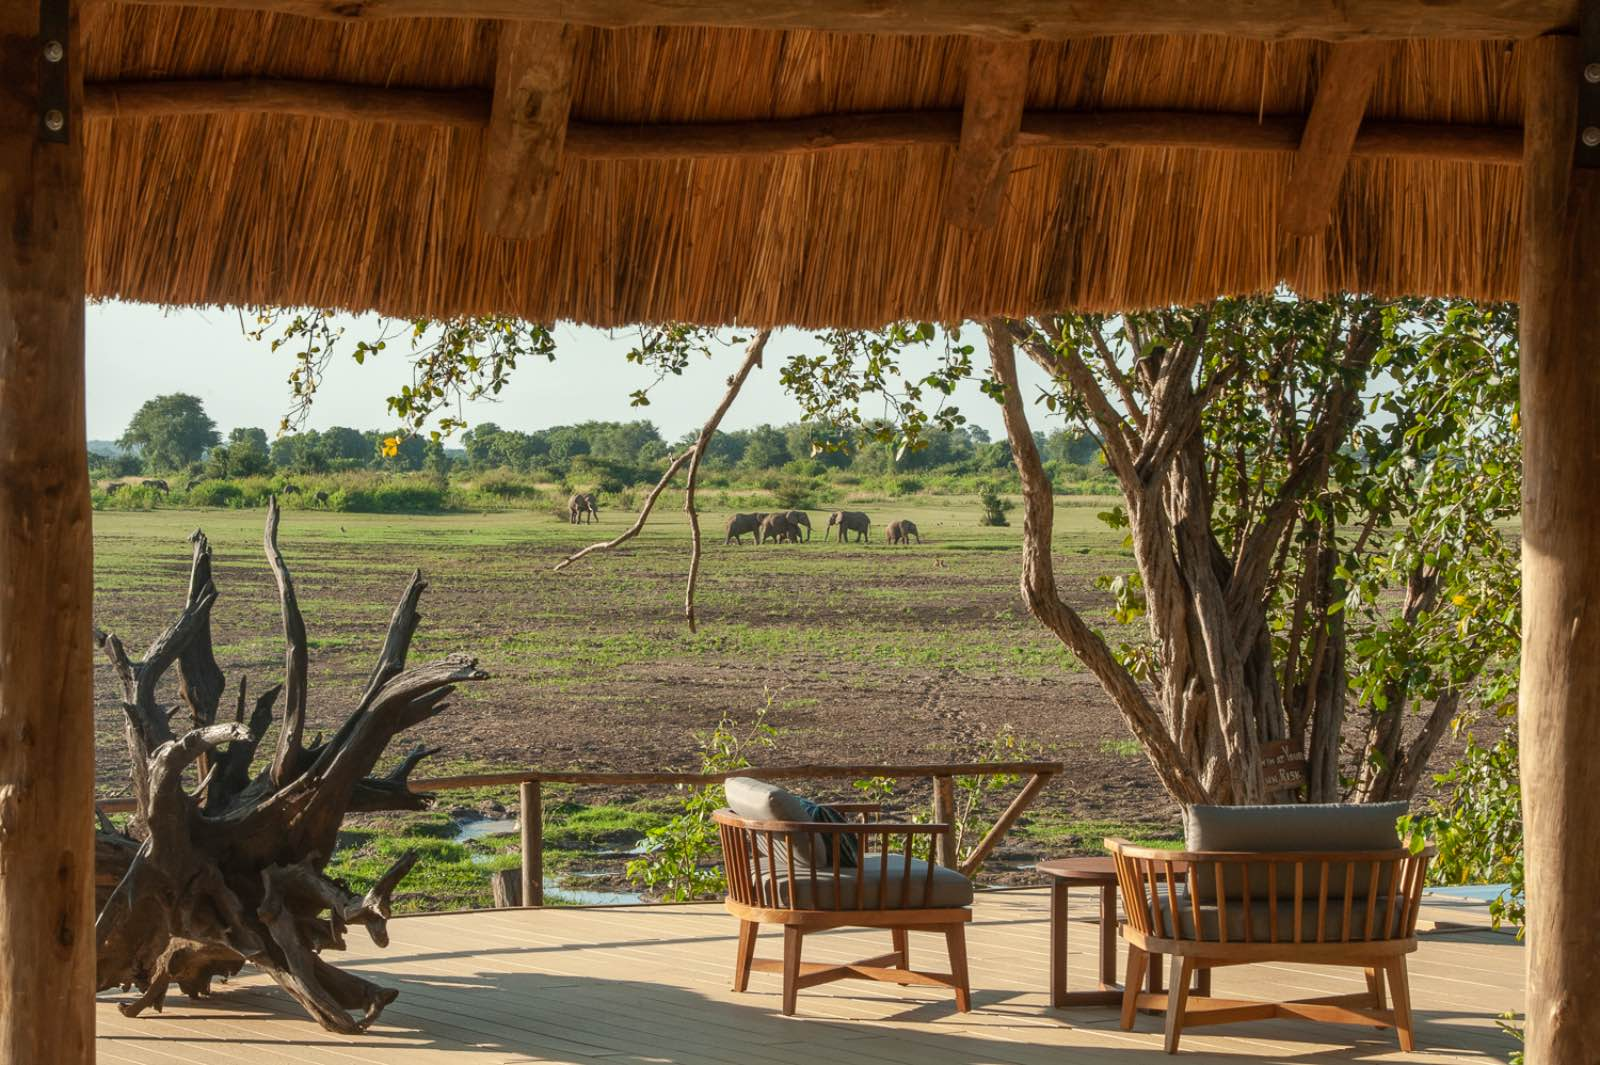 Watching elephants from the deck at Kafunta River Lodge